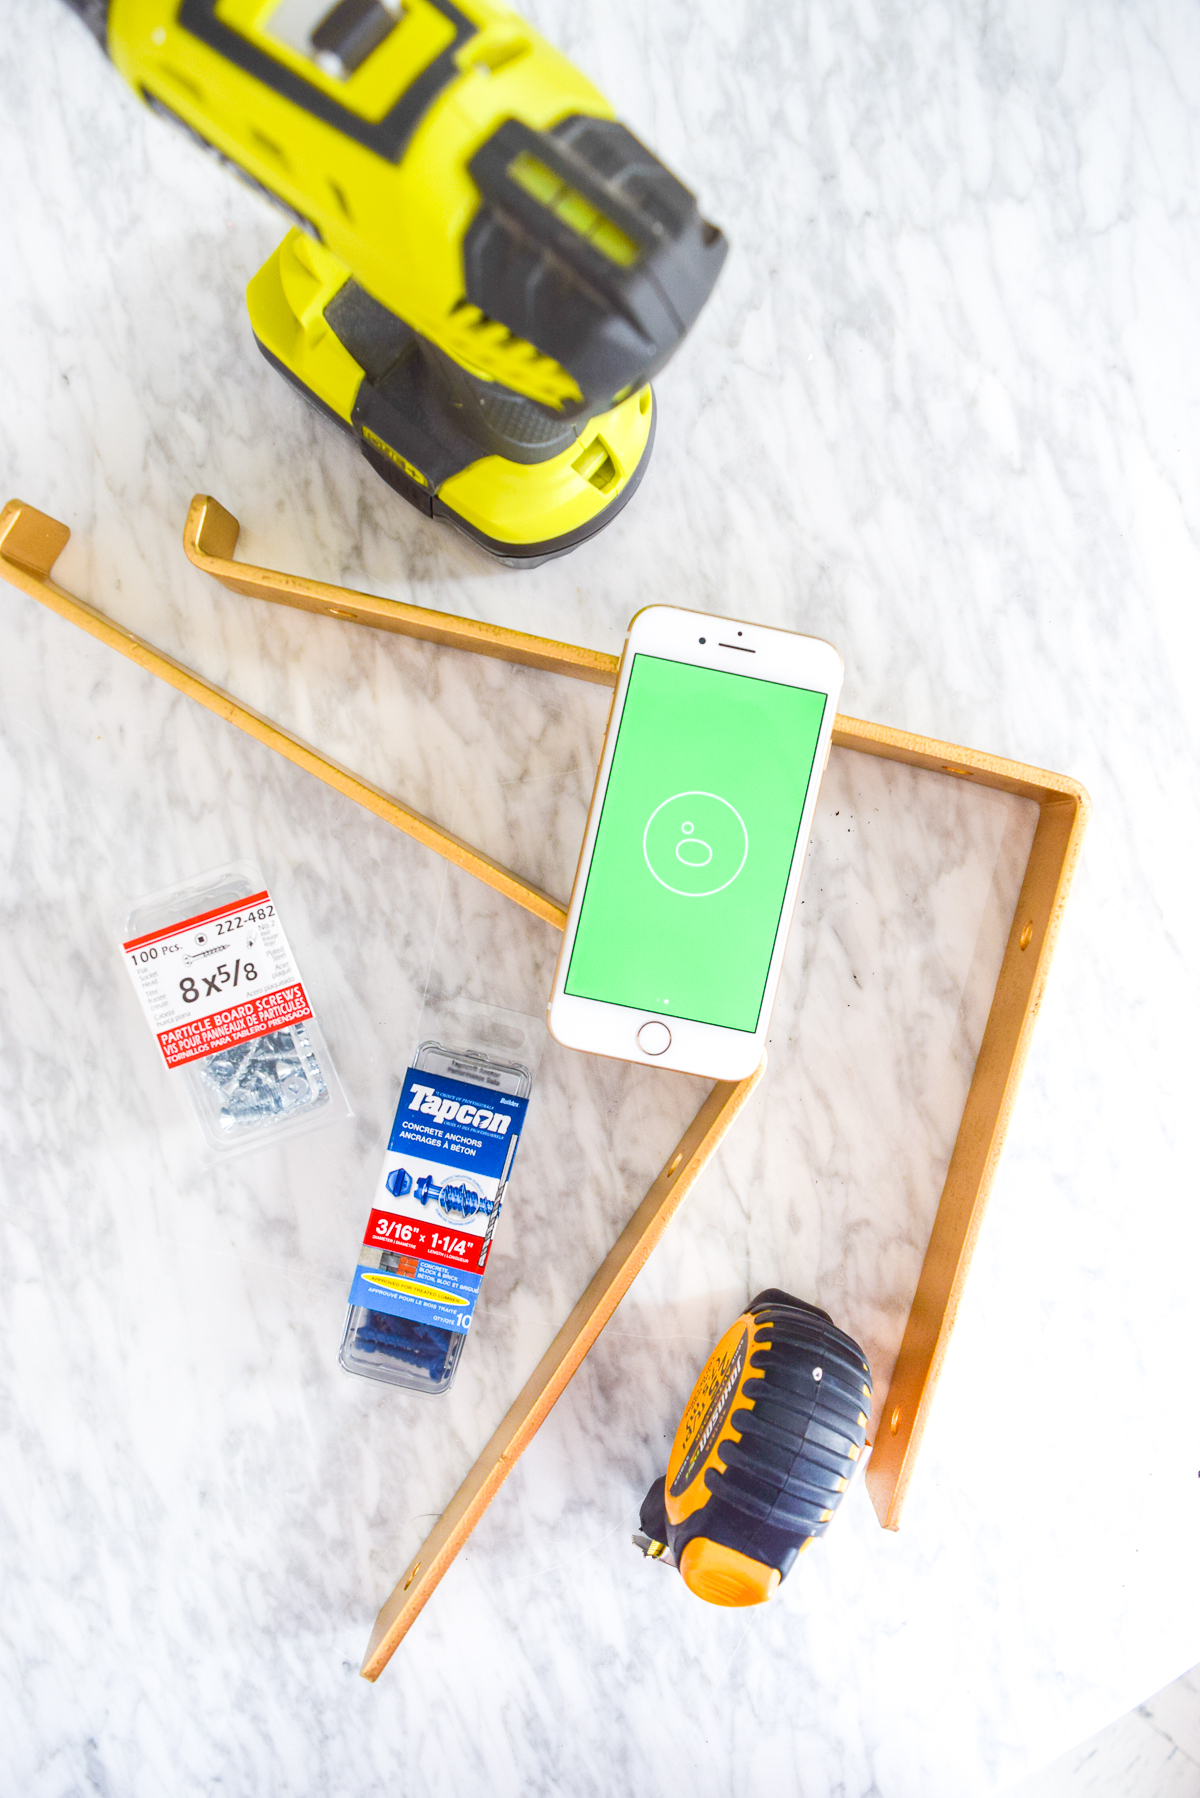 gold shelf bracket and tools on a marble table